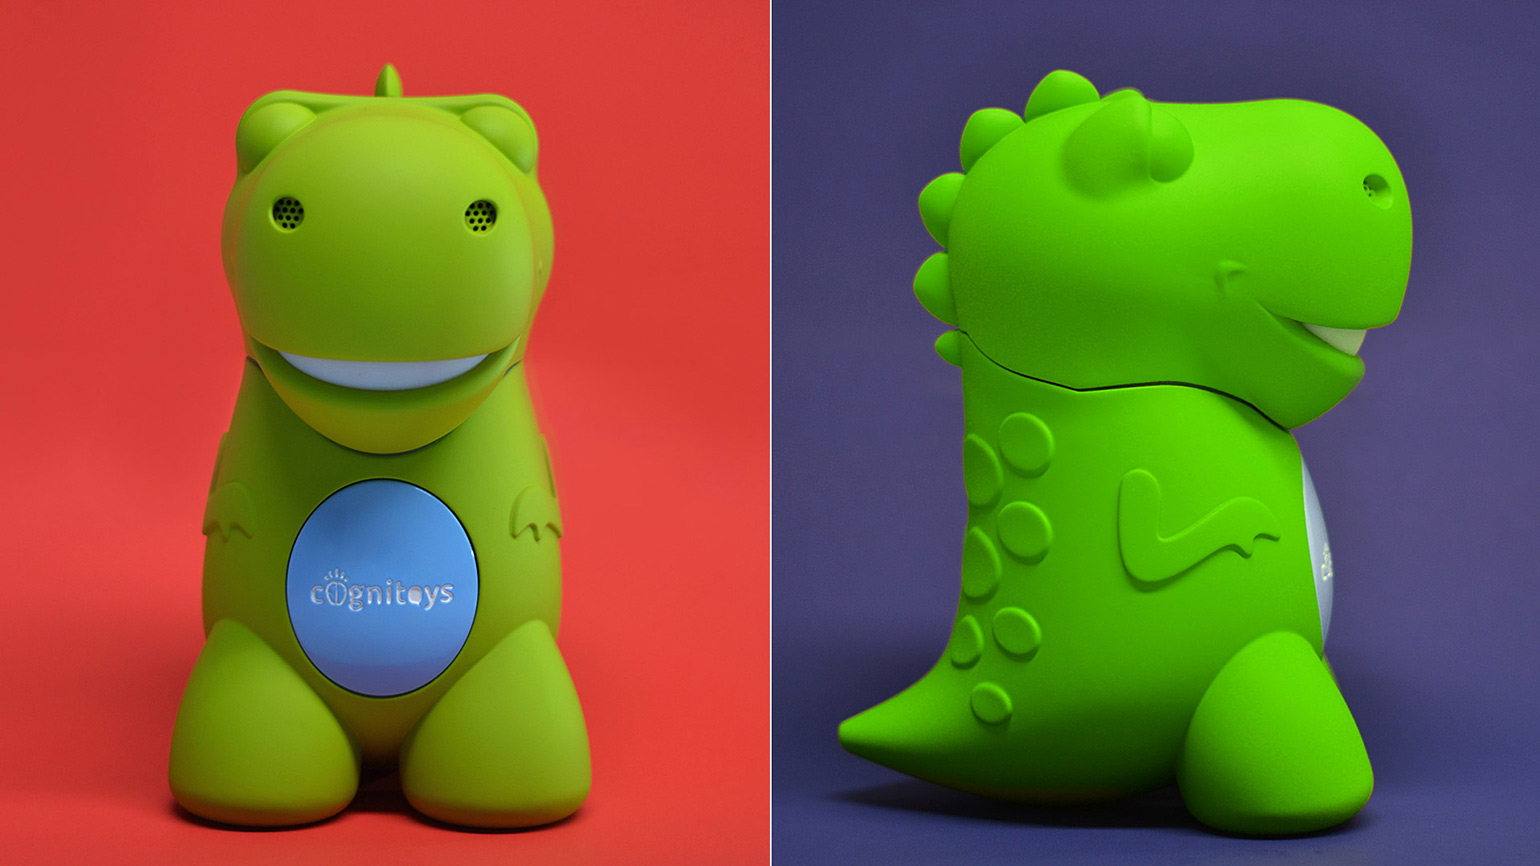 The original CogniToys dino prototype used as part of the brand Kickstarter campaign.